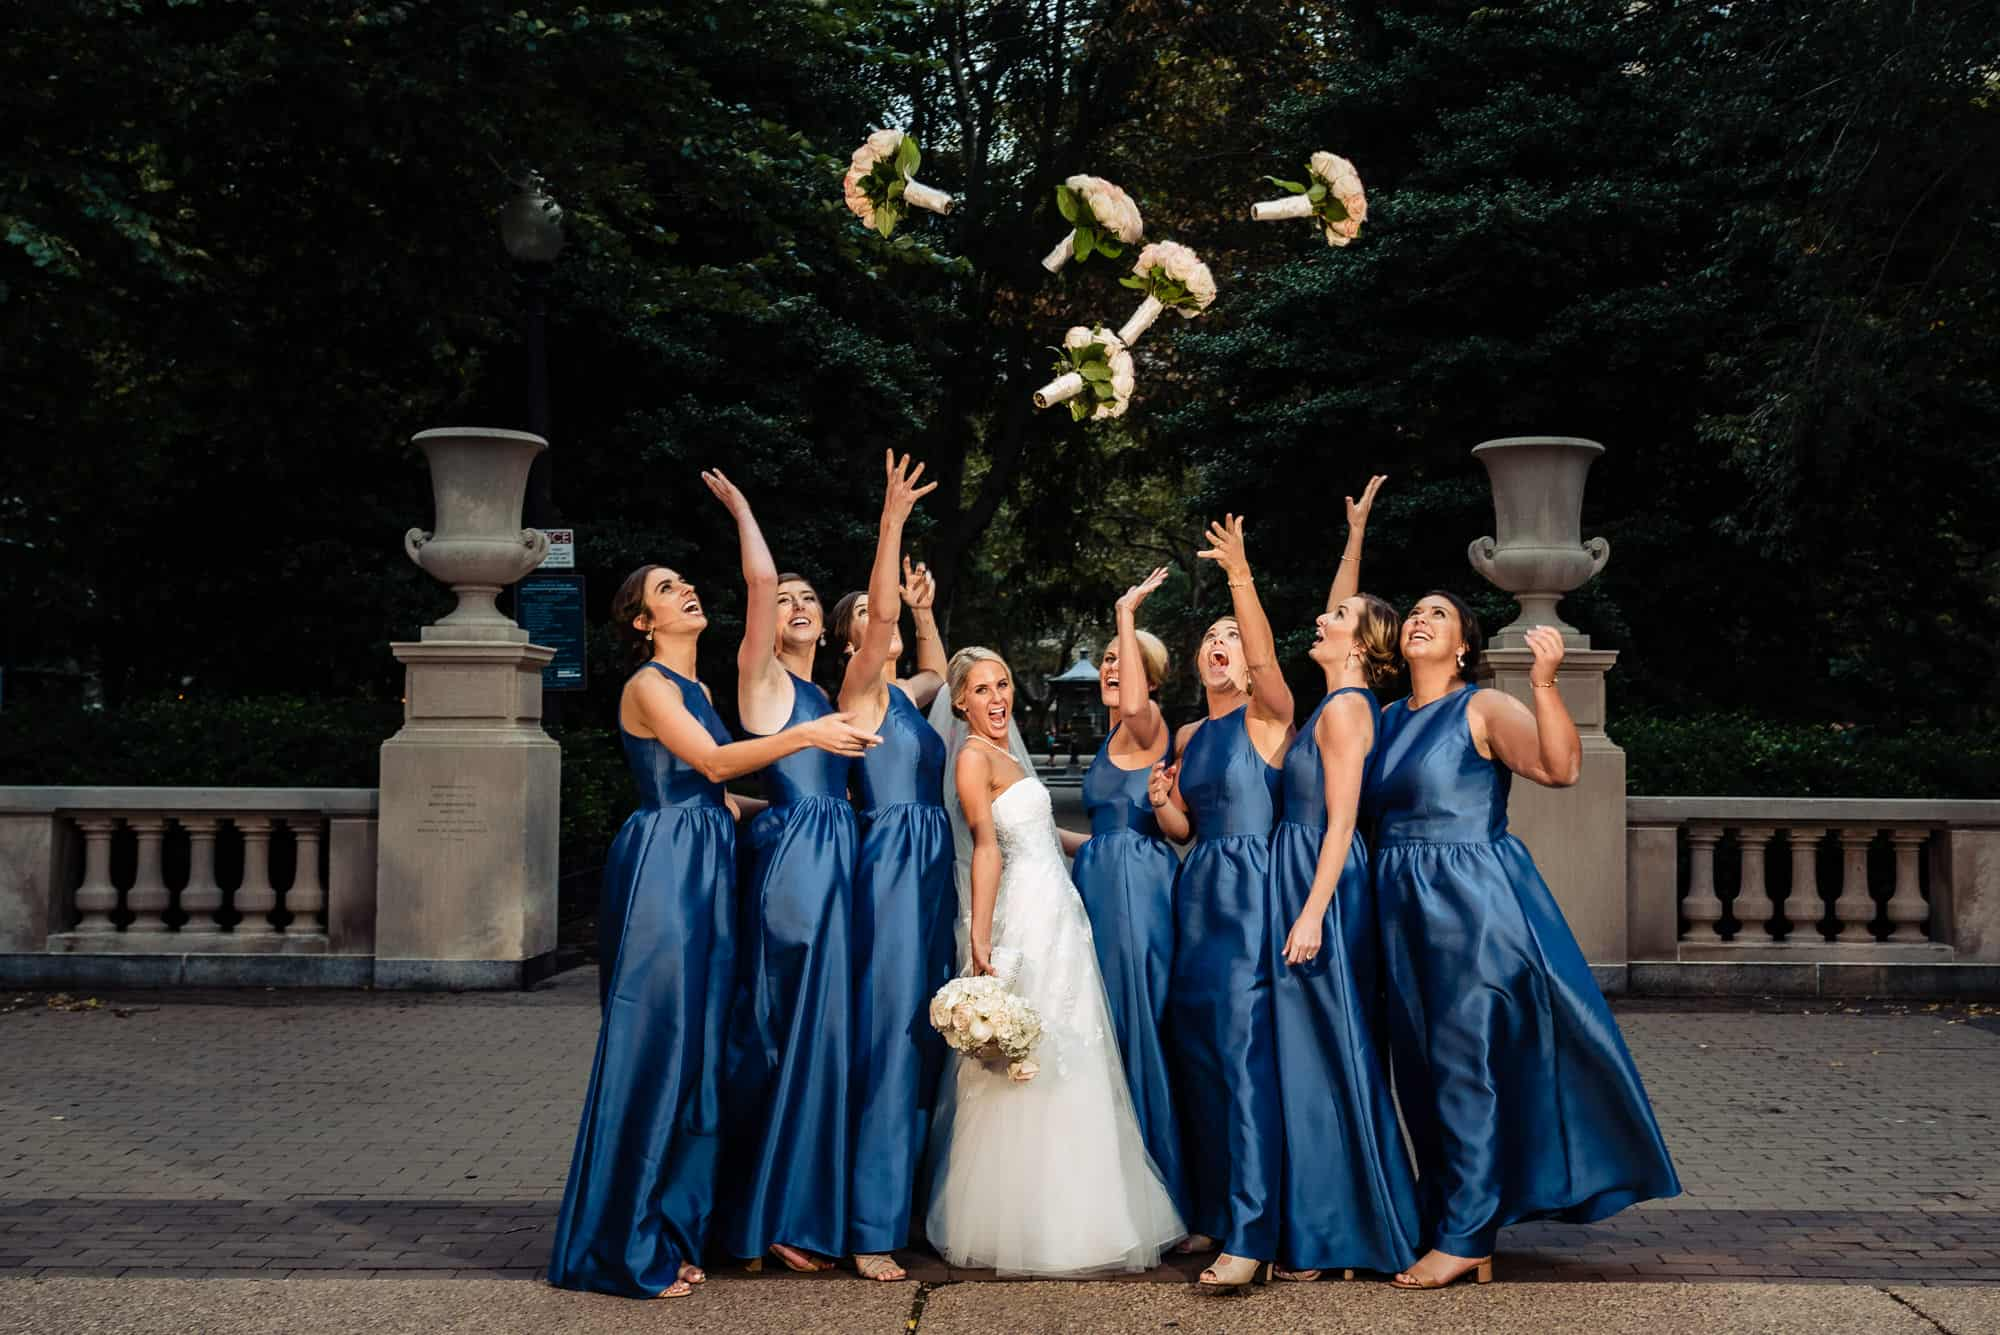 Ritz Carlton Philadelphia Wedding|bridemaids throwing flowers up in the air